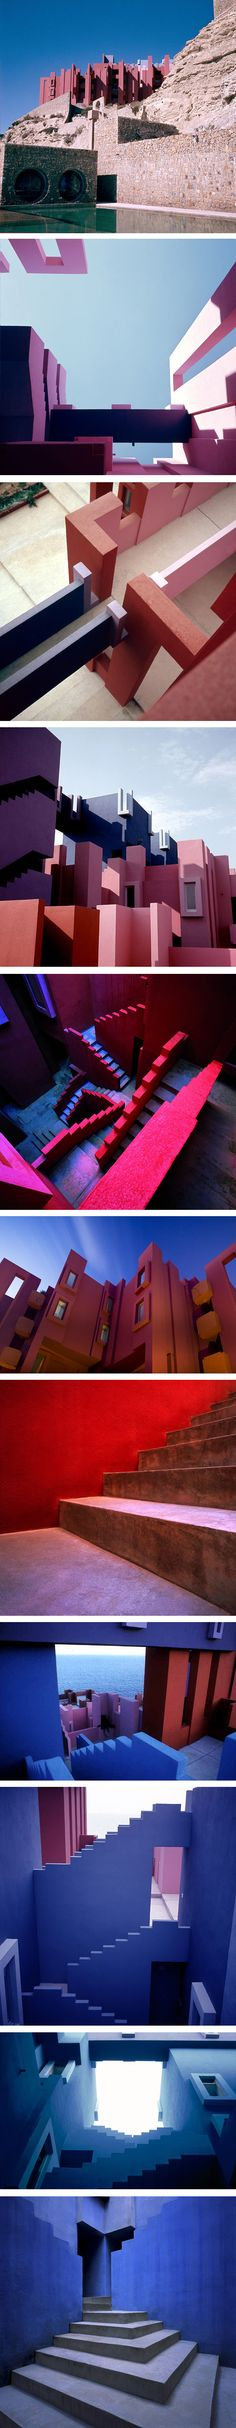 """""""The Red Wall"""" (La Muralla Roja) 50 apartment building by #architect Ricardo Bofill in Spain.....dated 1973"""